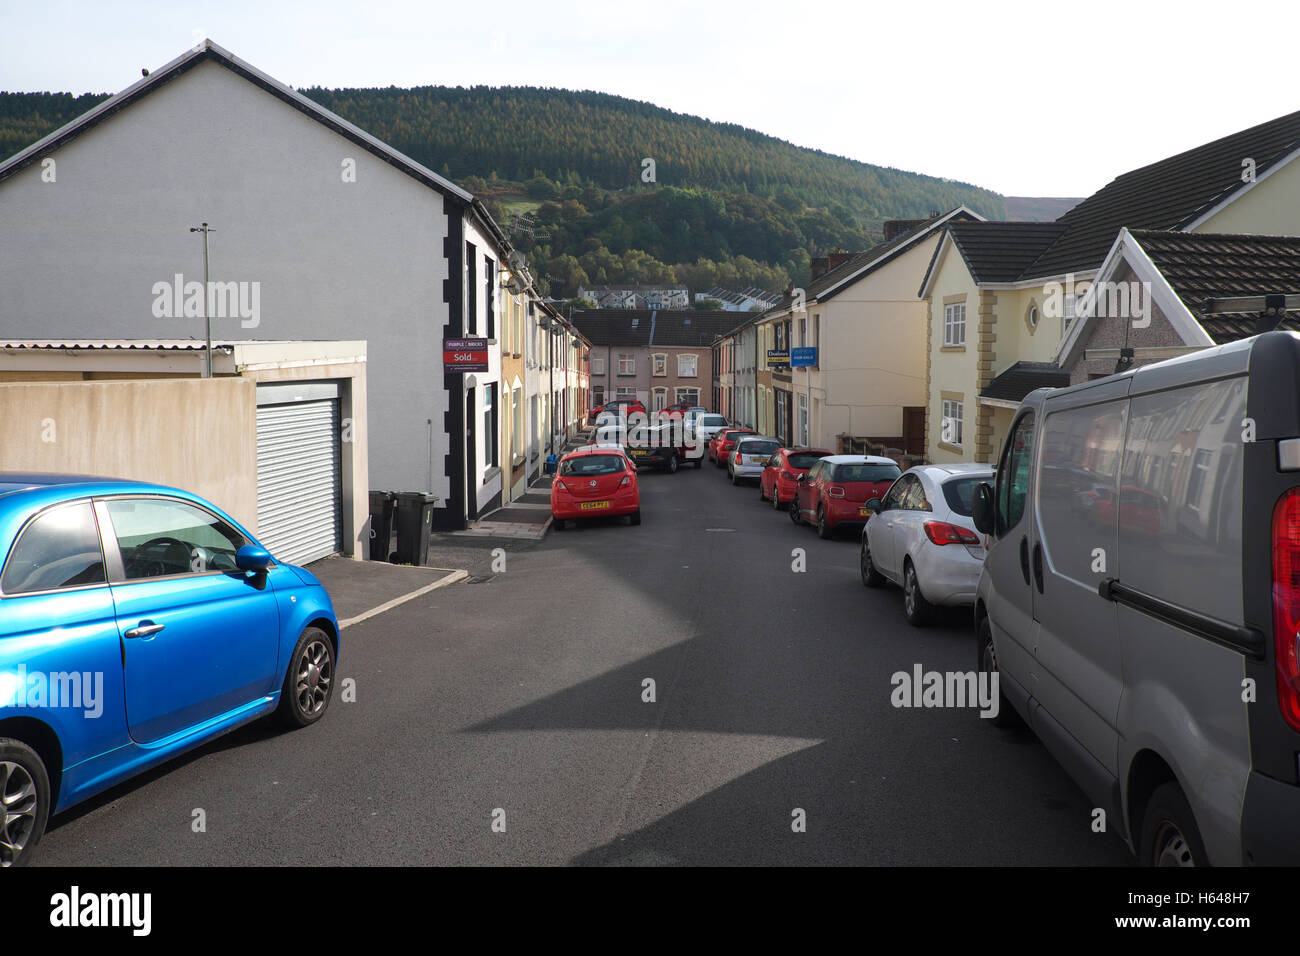 Aberfan, Wales - typical back to back terraced housing in Aberfan a small former mining community in South Wales - Stock Image